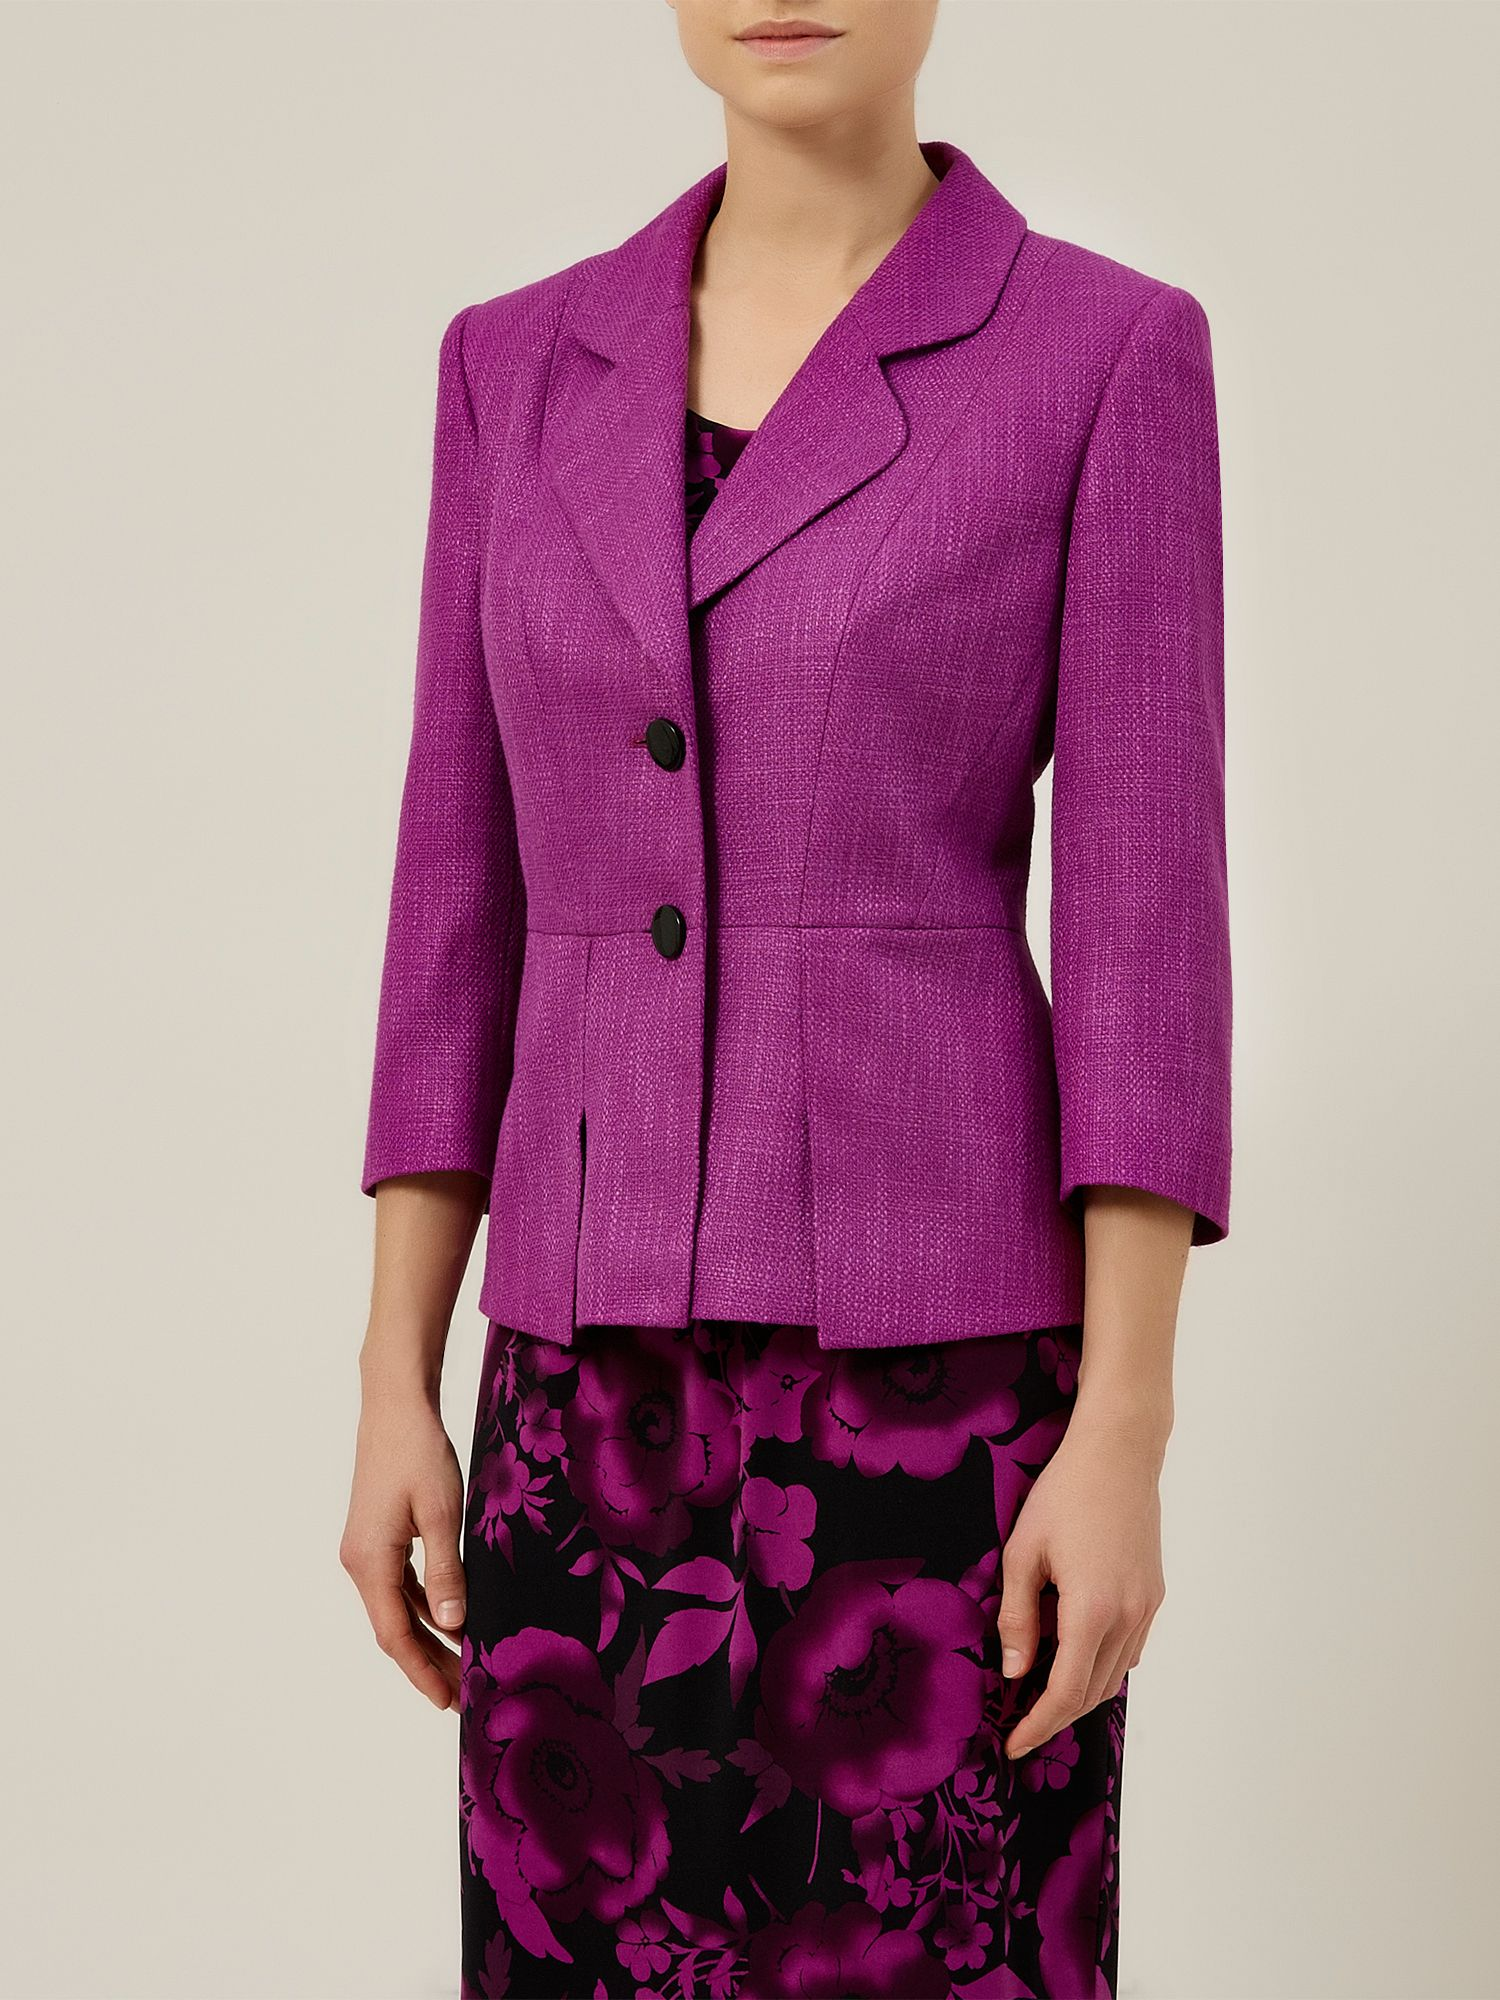 Berry textured jacket